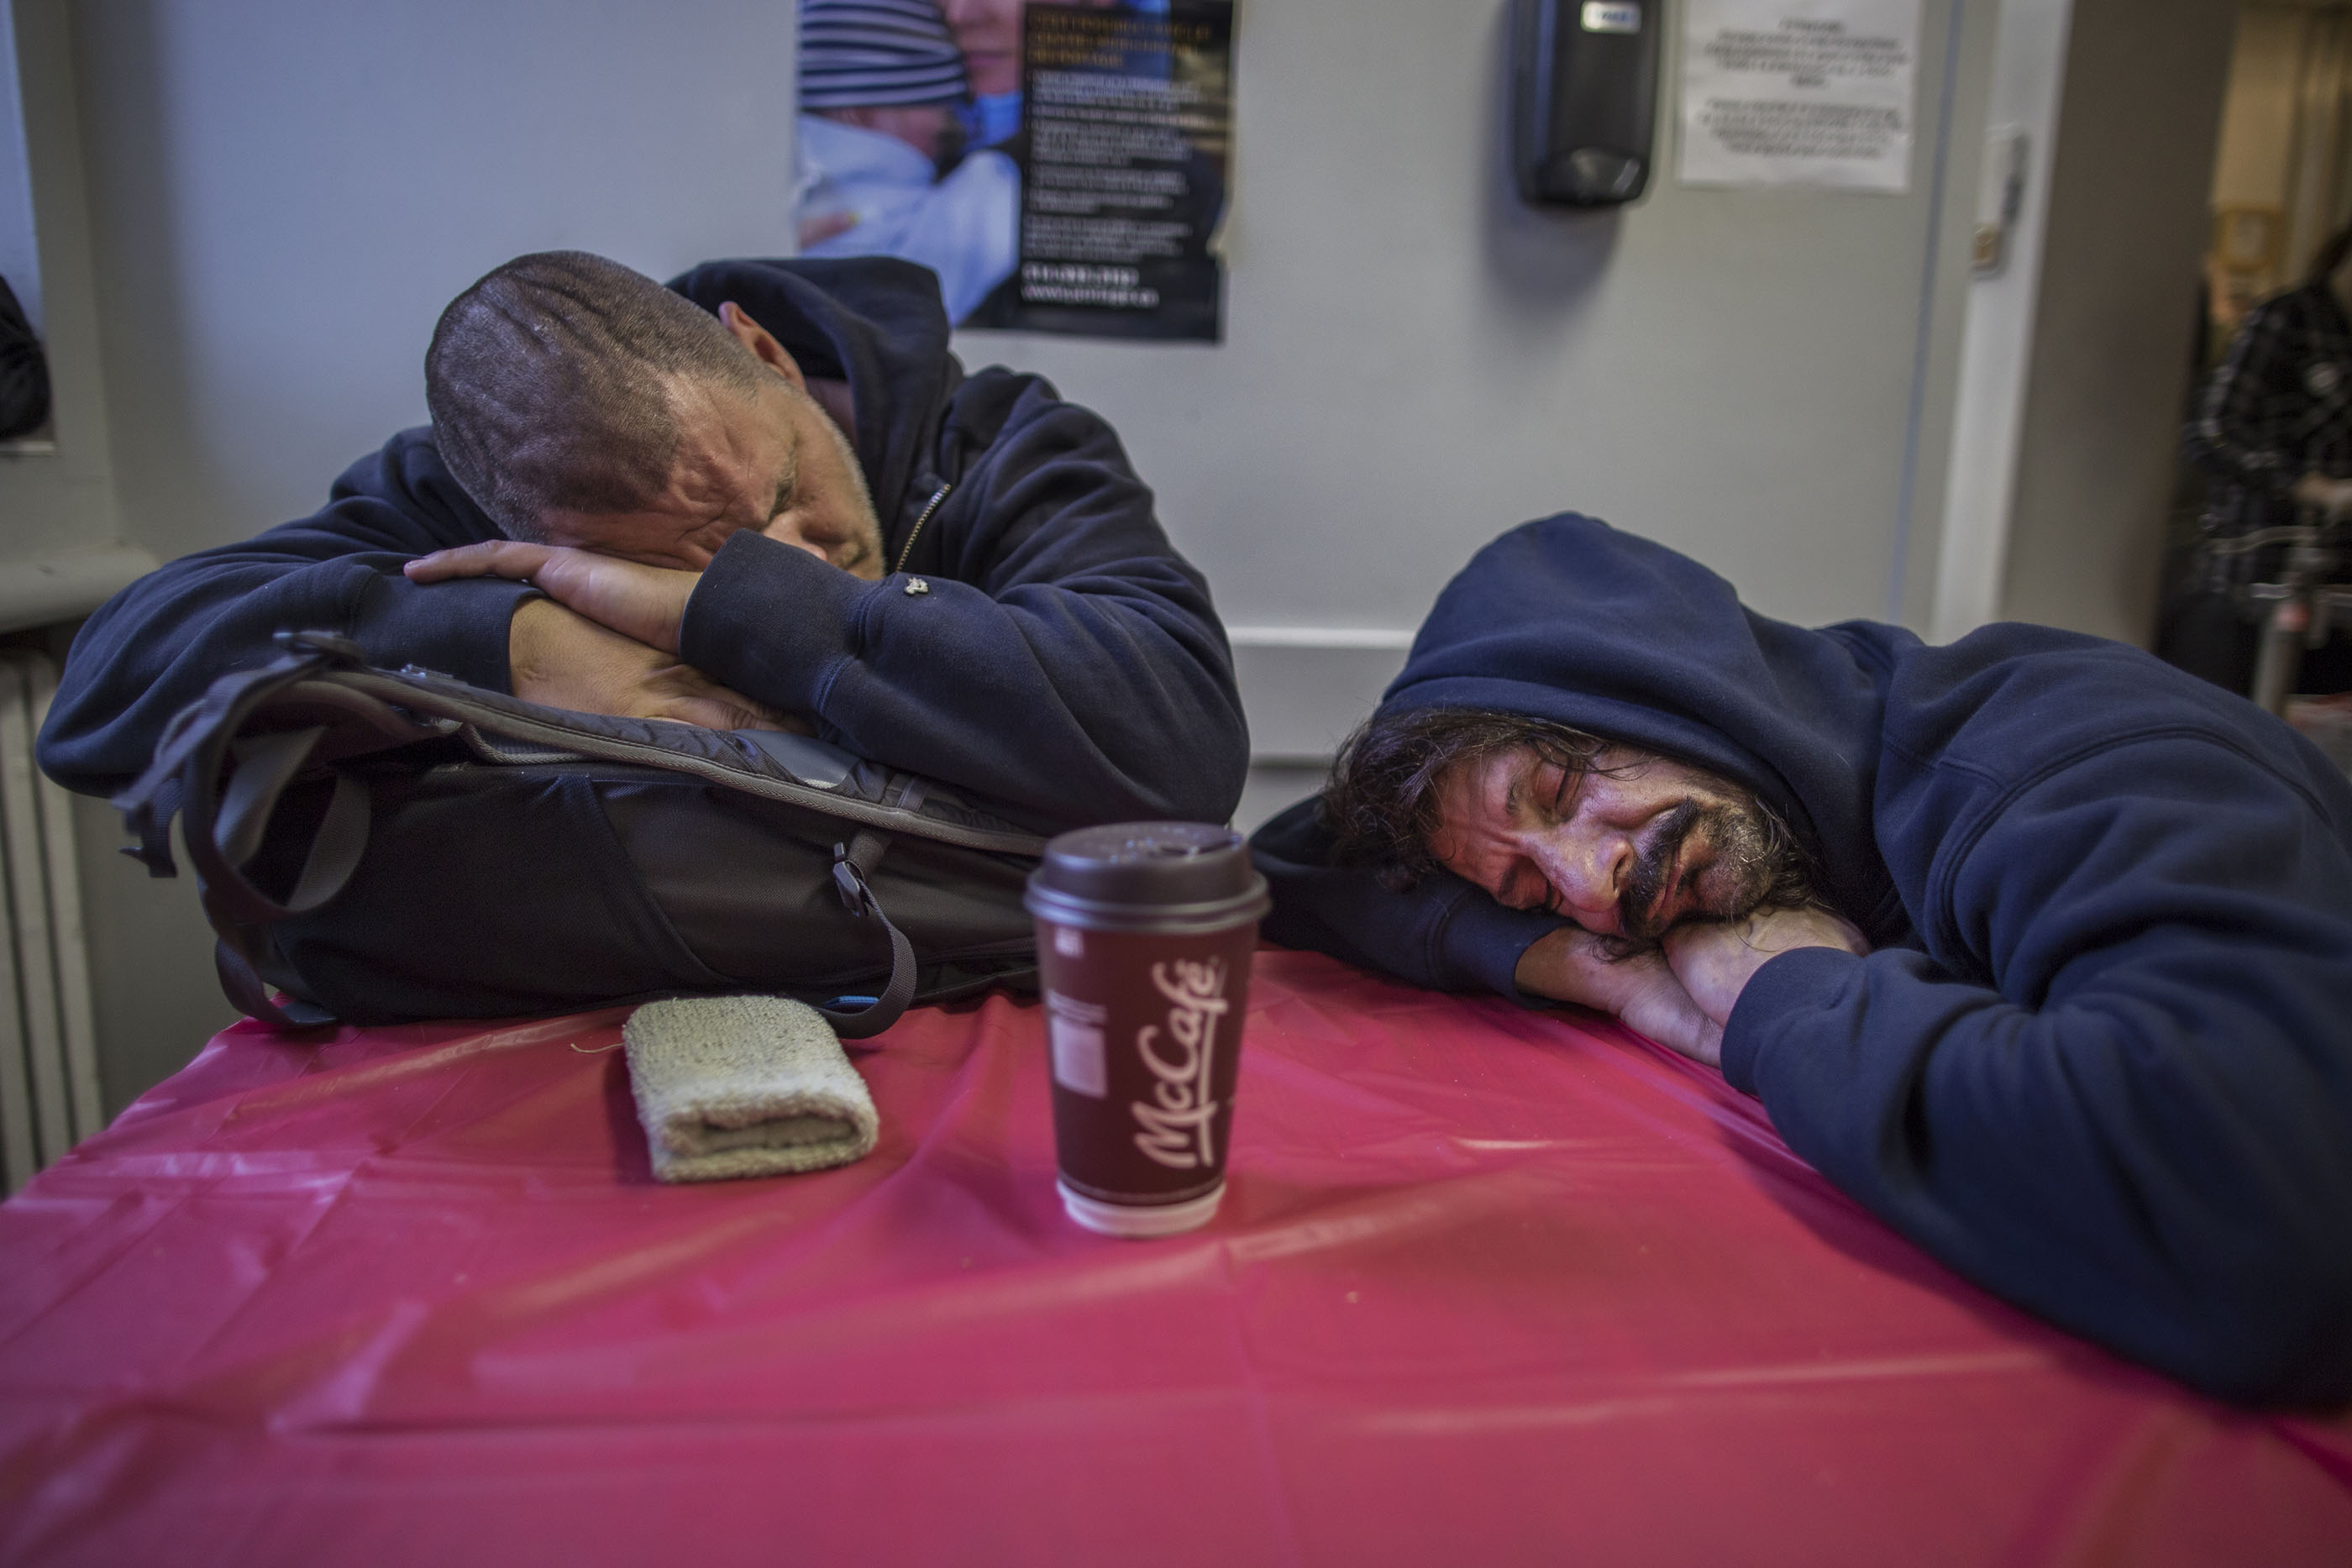 HOMELESS SHELTER STREET REST Photoreport MICHAEL MONNIER